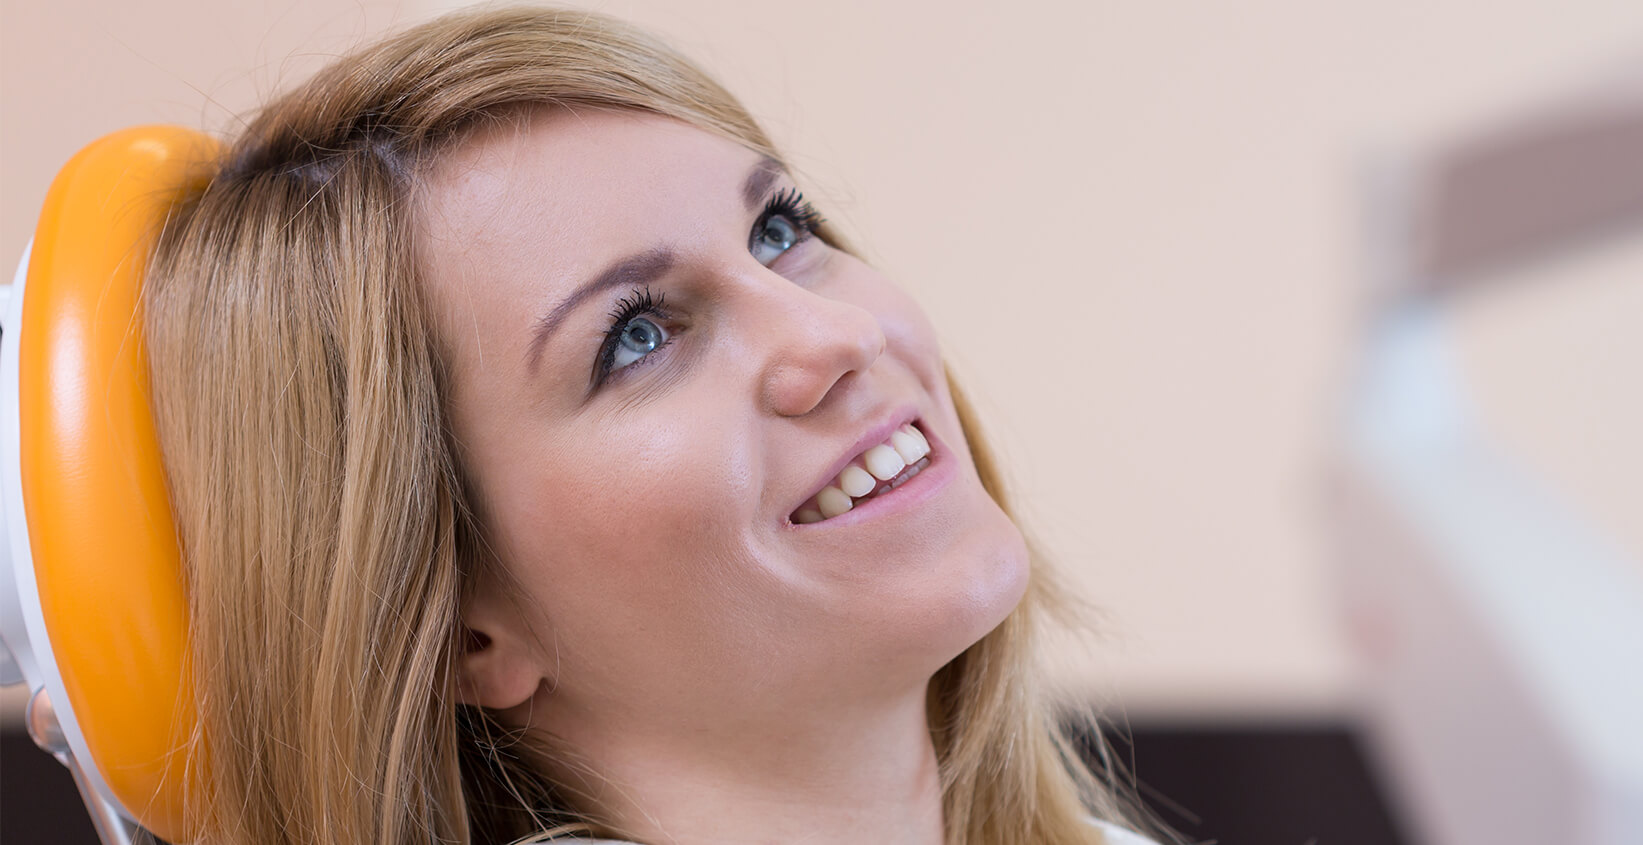 Say Goodbye to Your Smile Imperfections with Dental Crowns Treatment